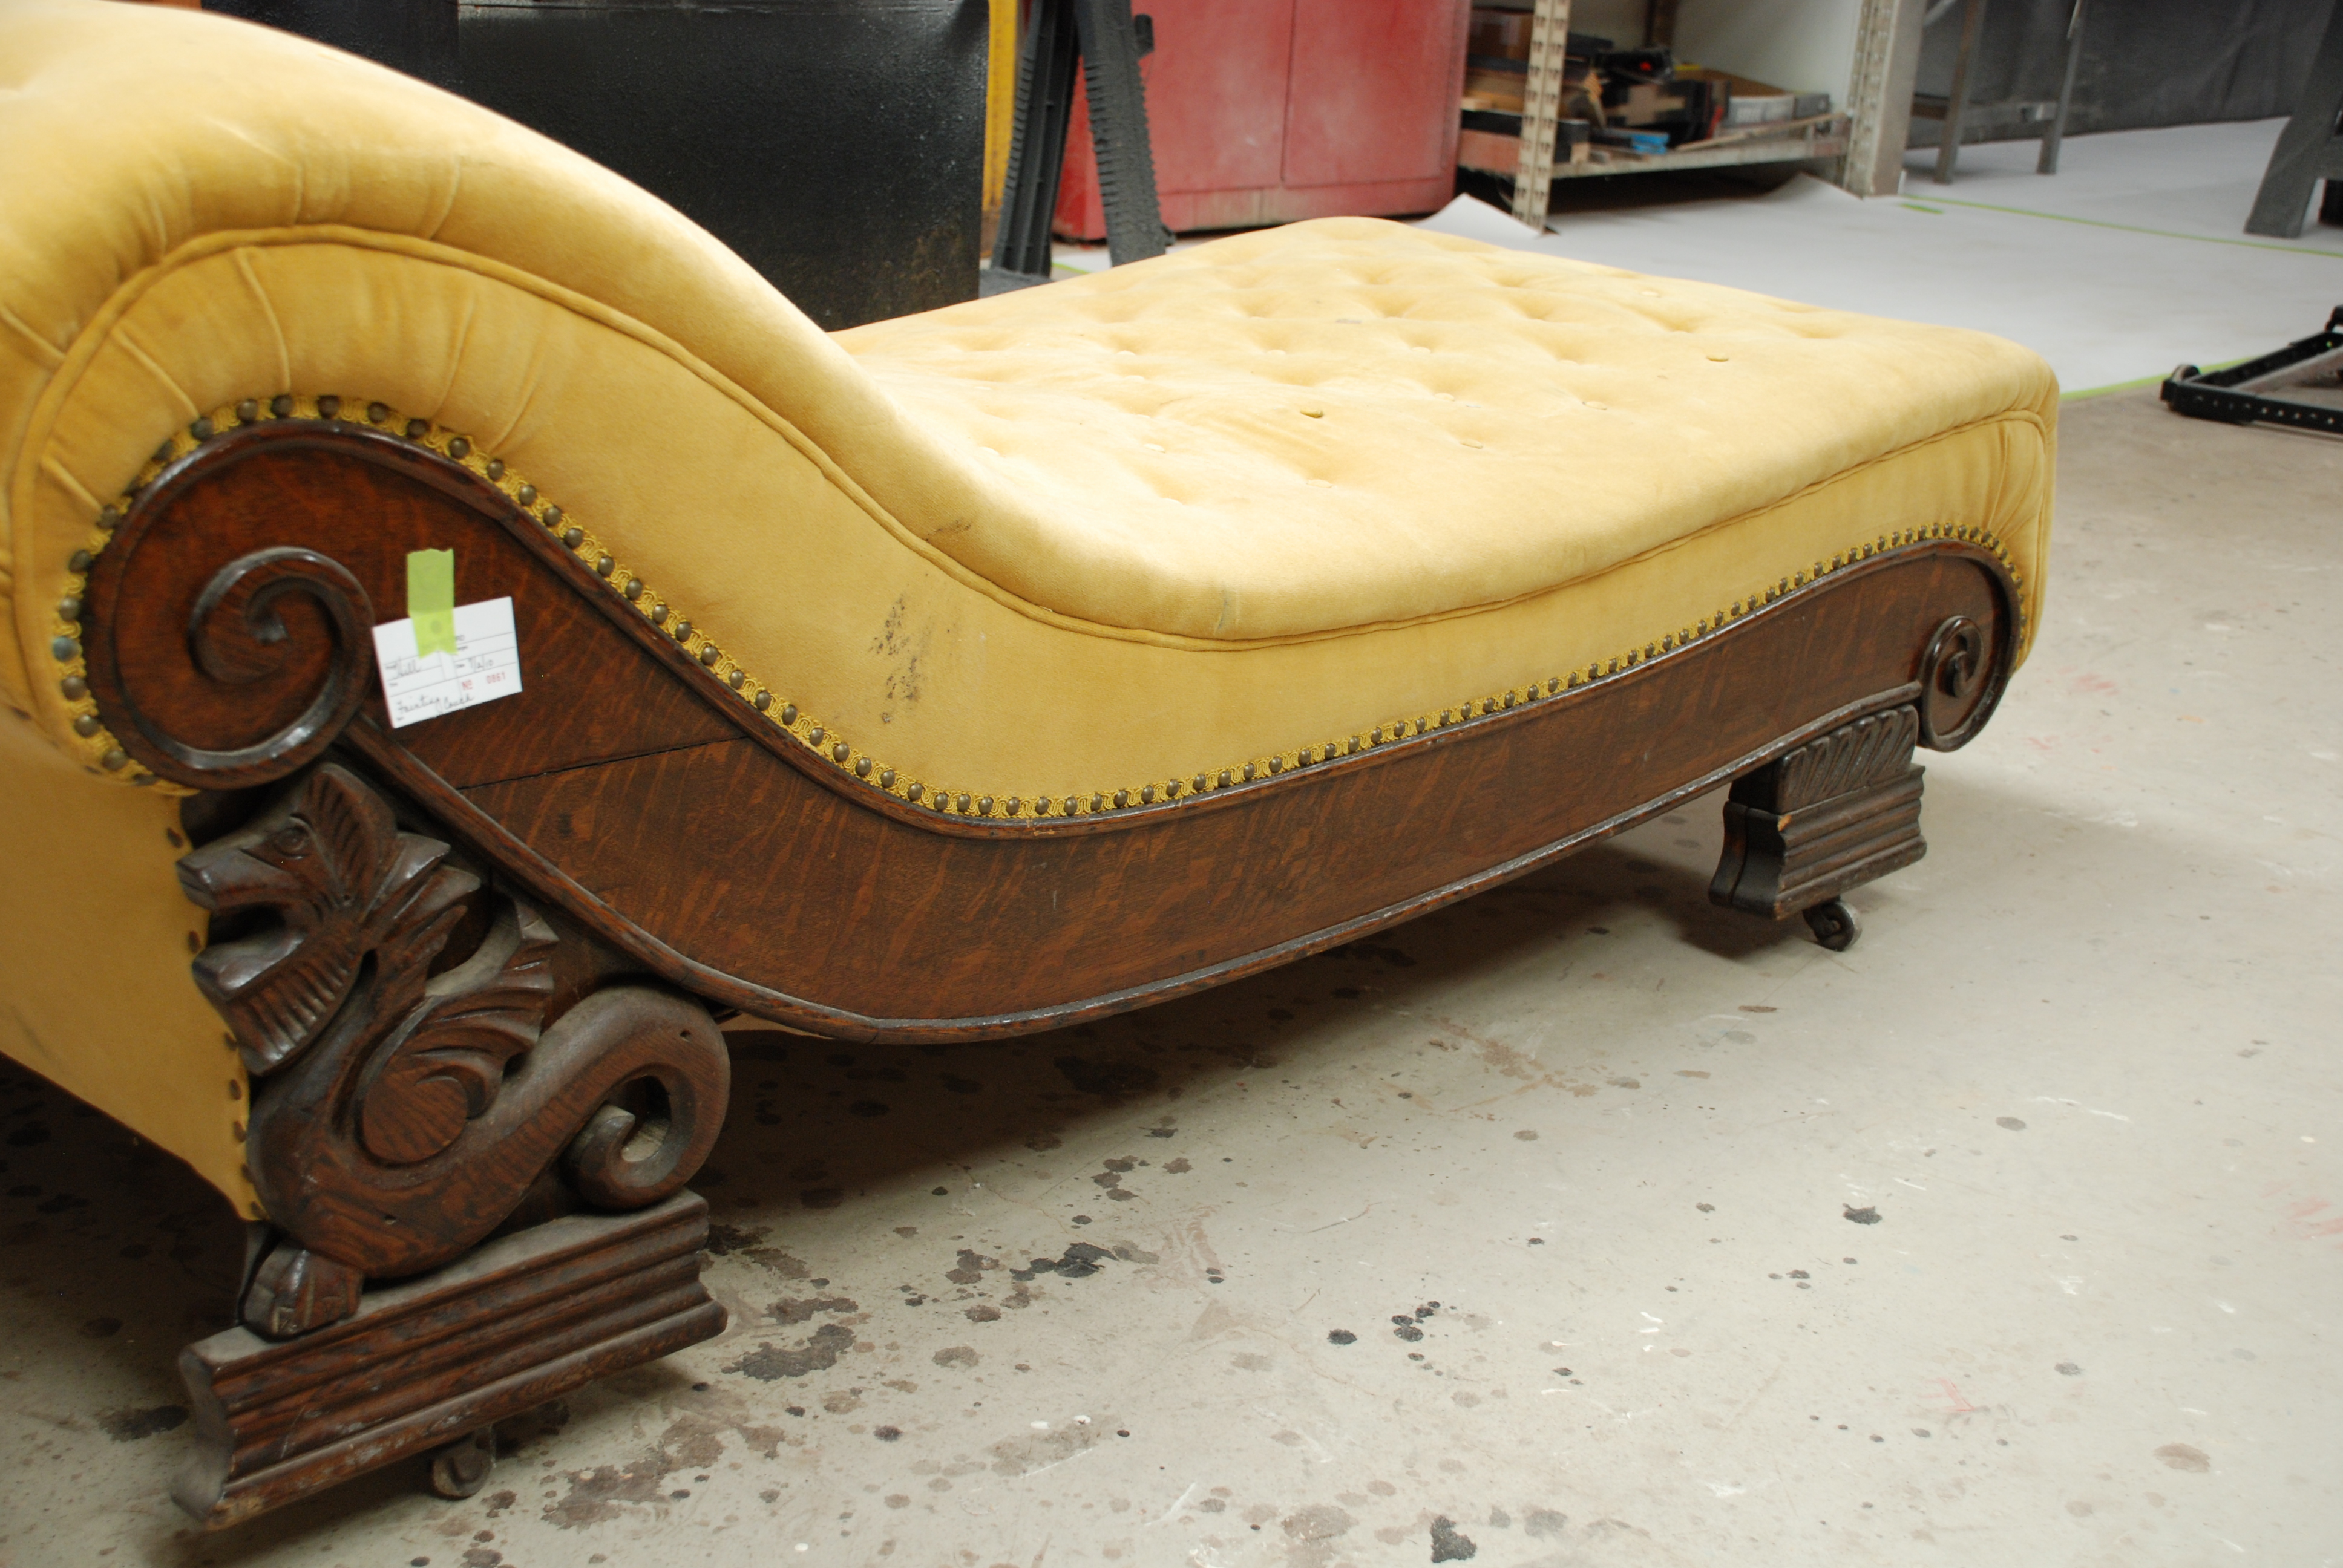 SURPRISE FAINTING COUCH